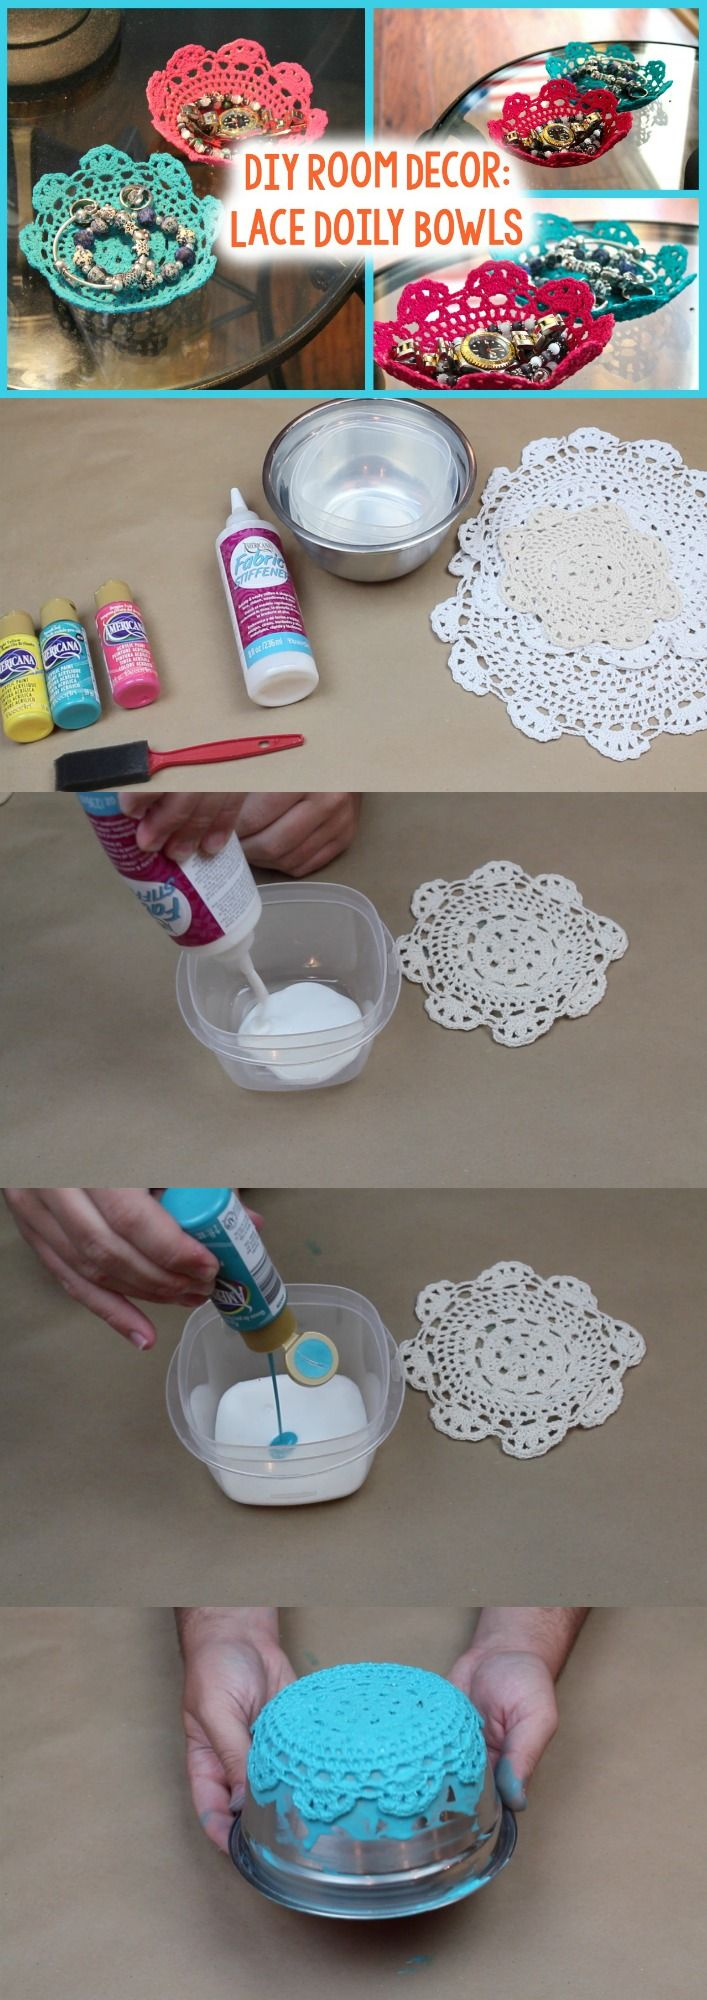 DIY Lace Doily Bowl - Perfect DIY to hold jewlery